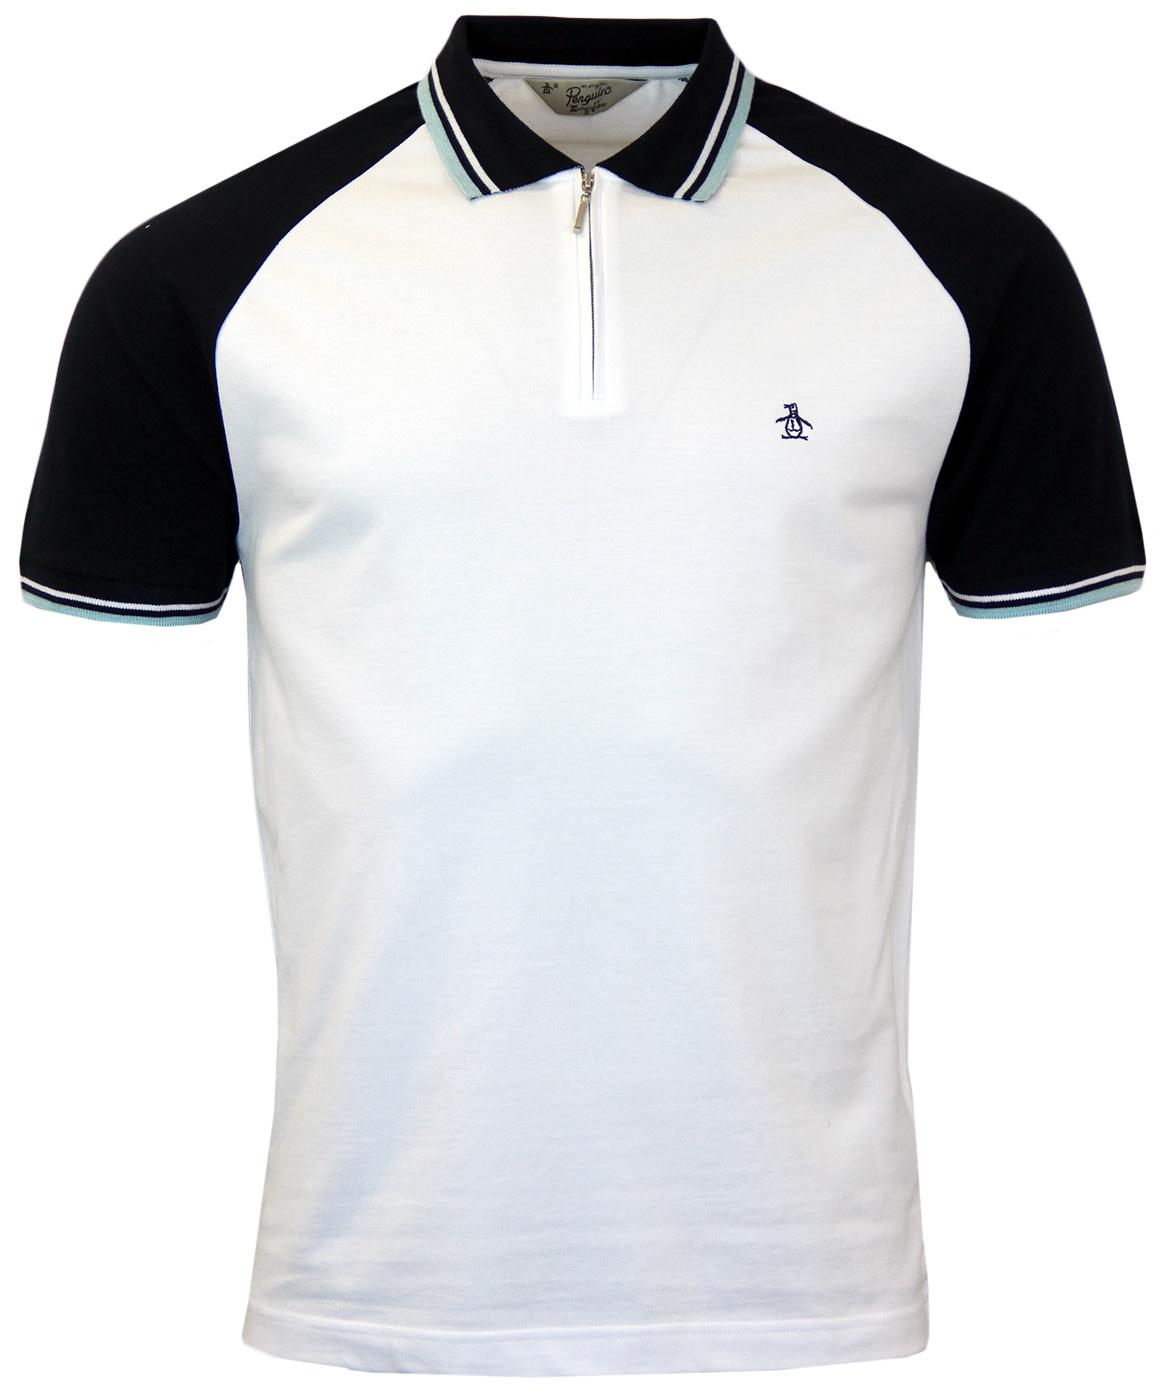 Lynks ORIGINAL PENGUIN Mod Tipped Collar Zip Polo